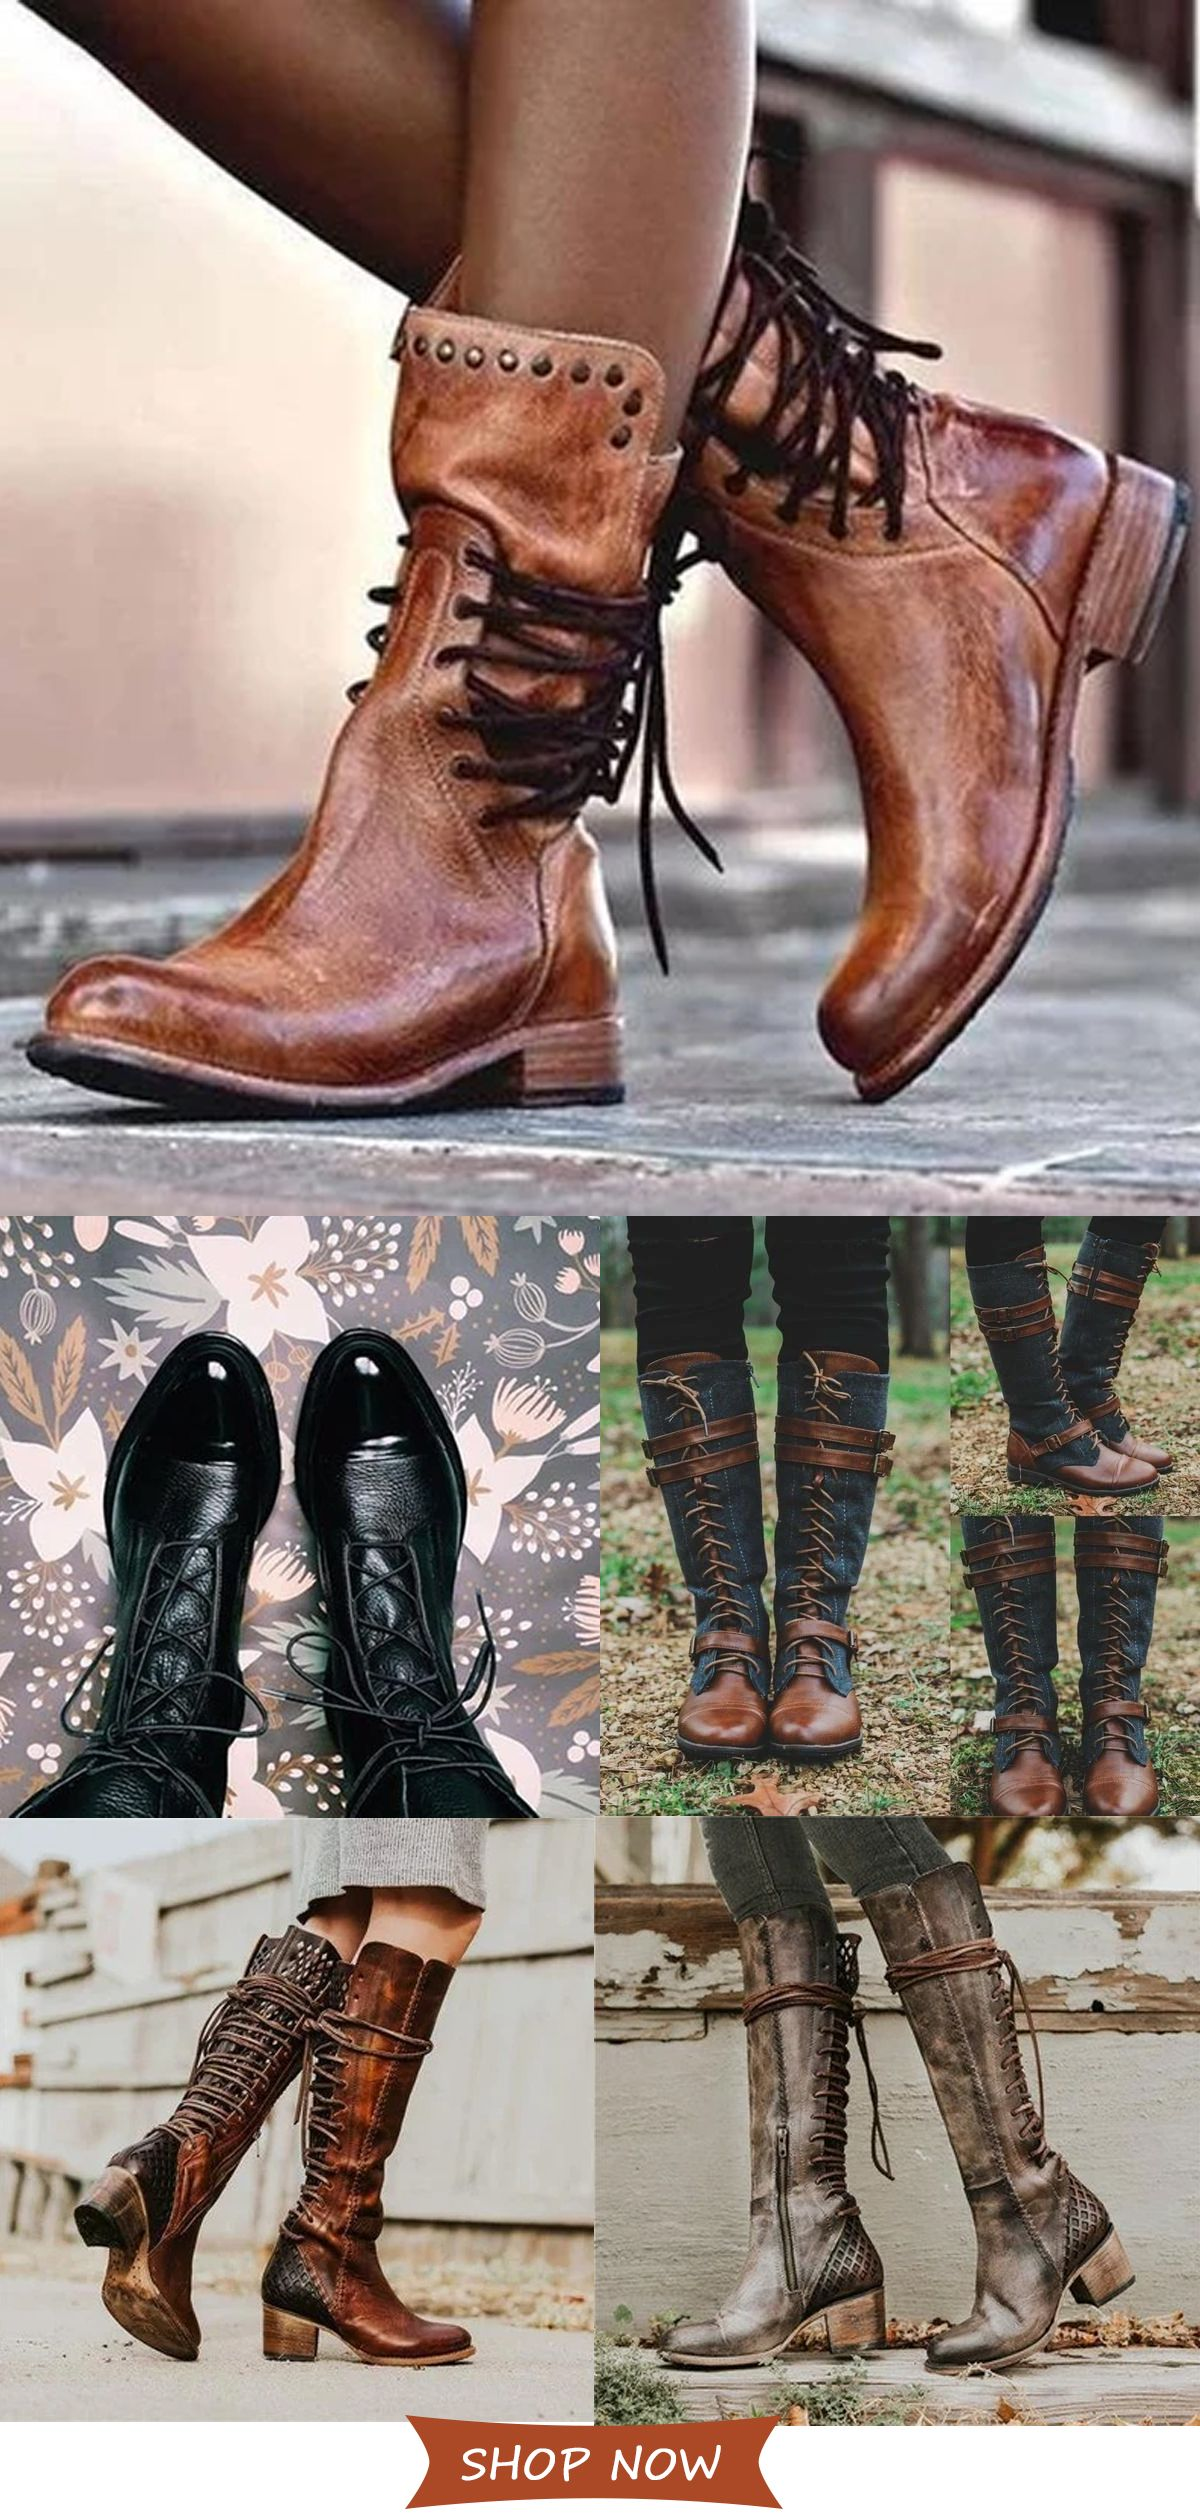 Photo of 2020 Fashion Trends. Hot Style Women's Boots Collections.Plu…